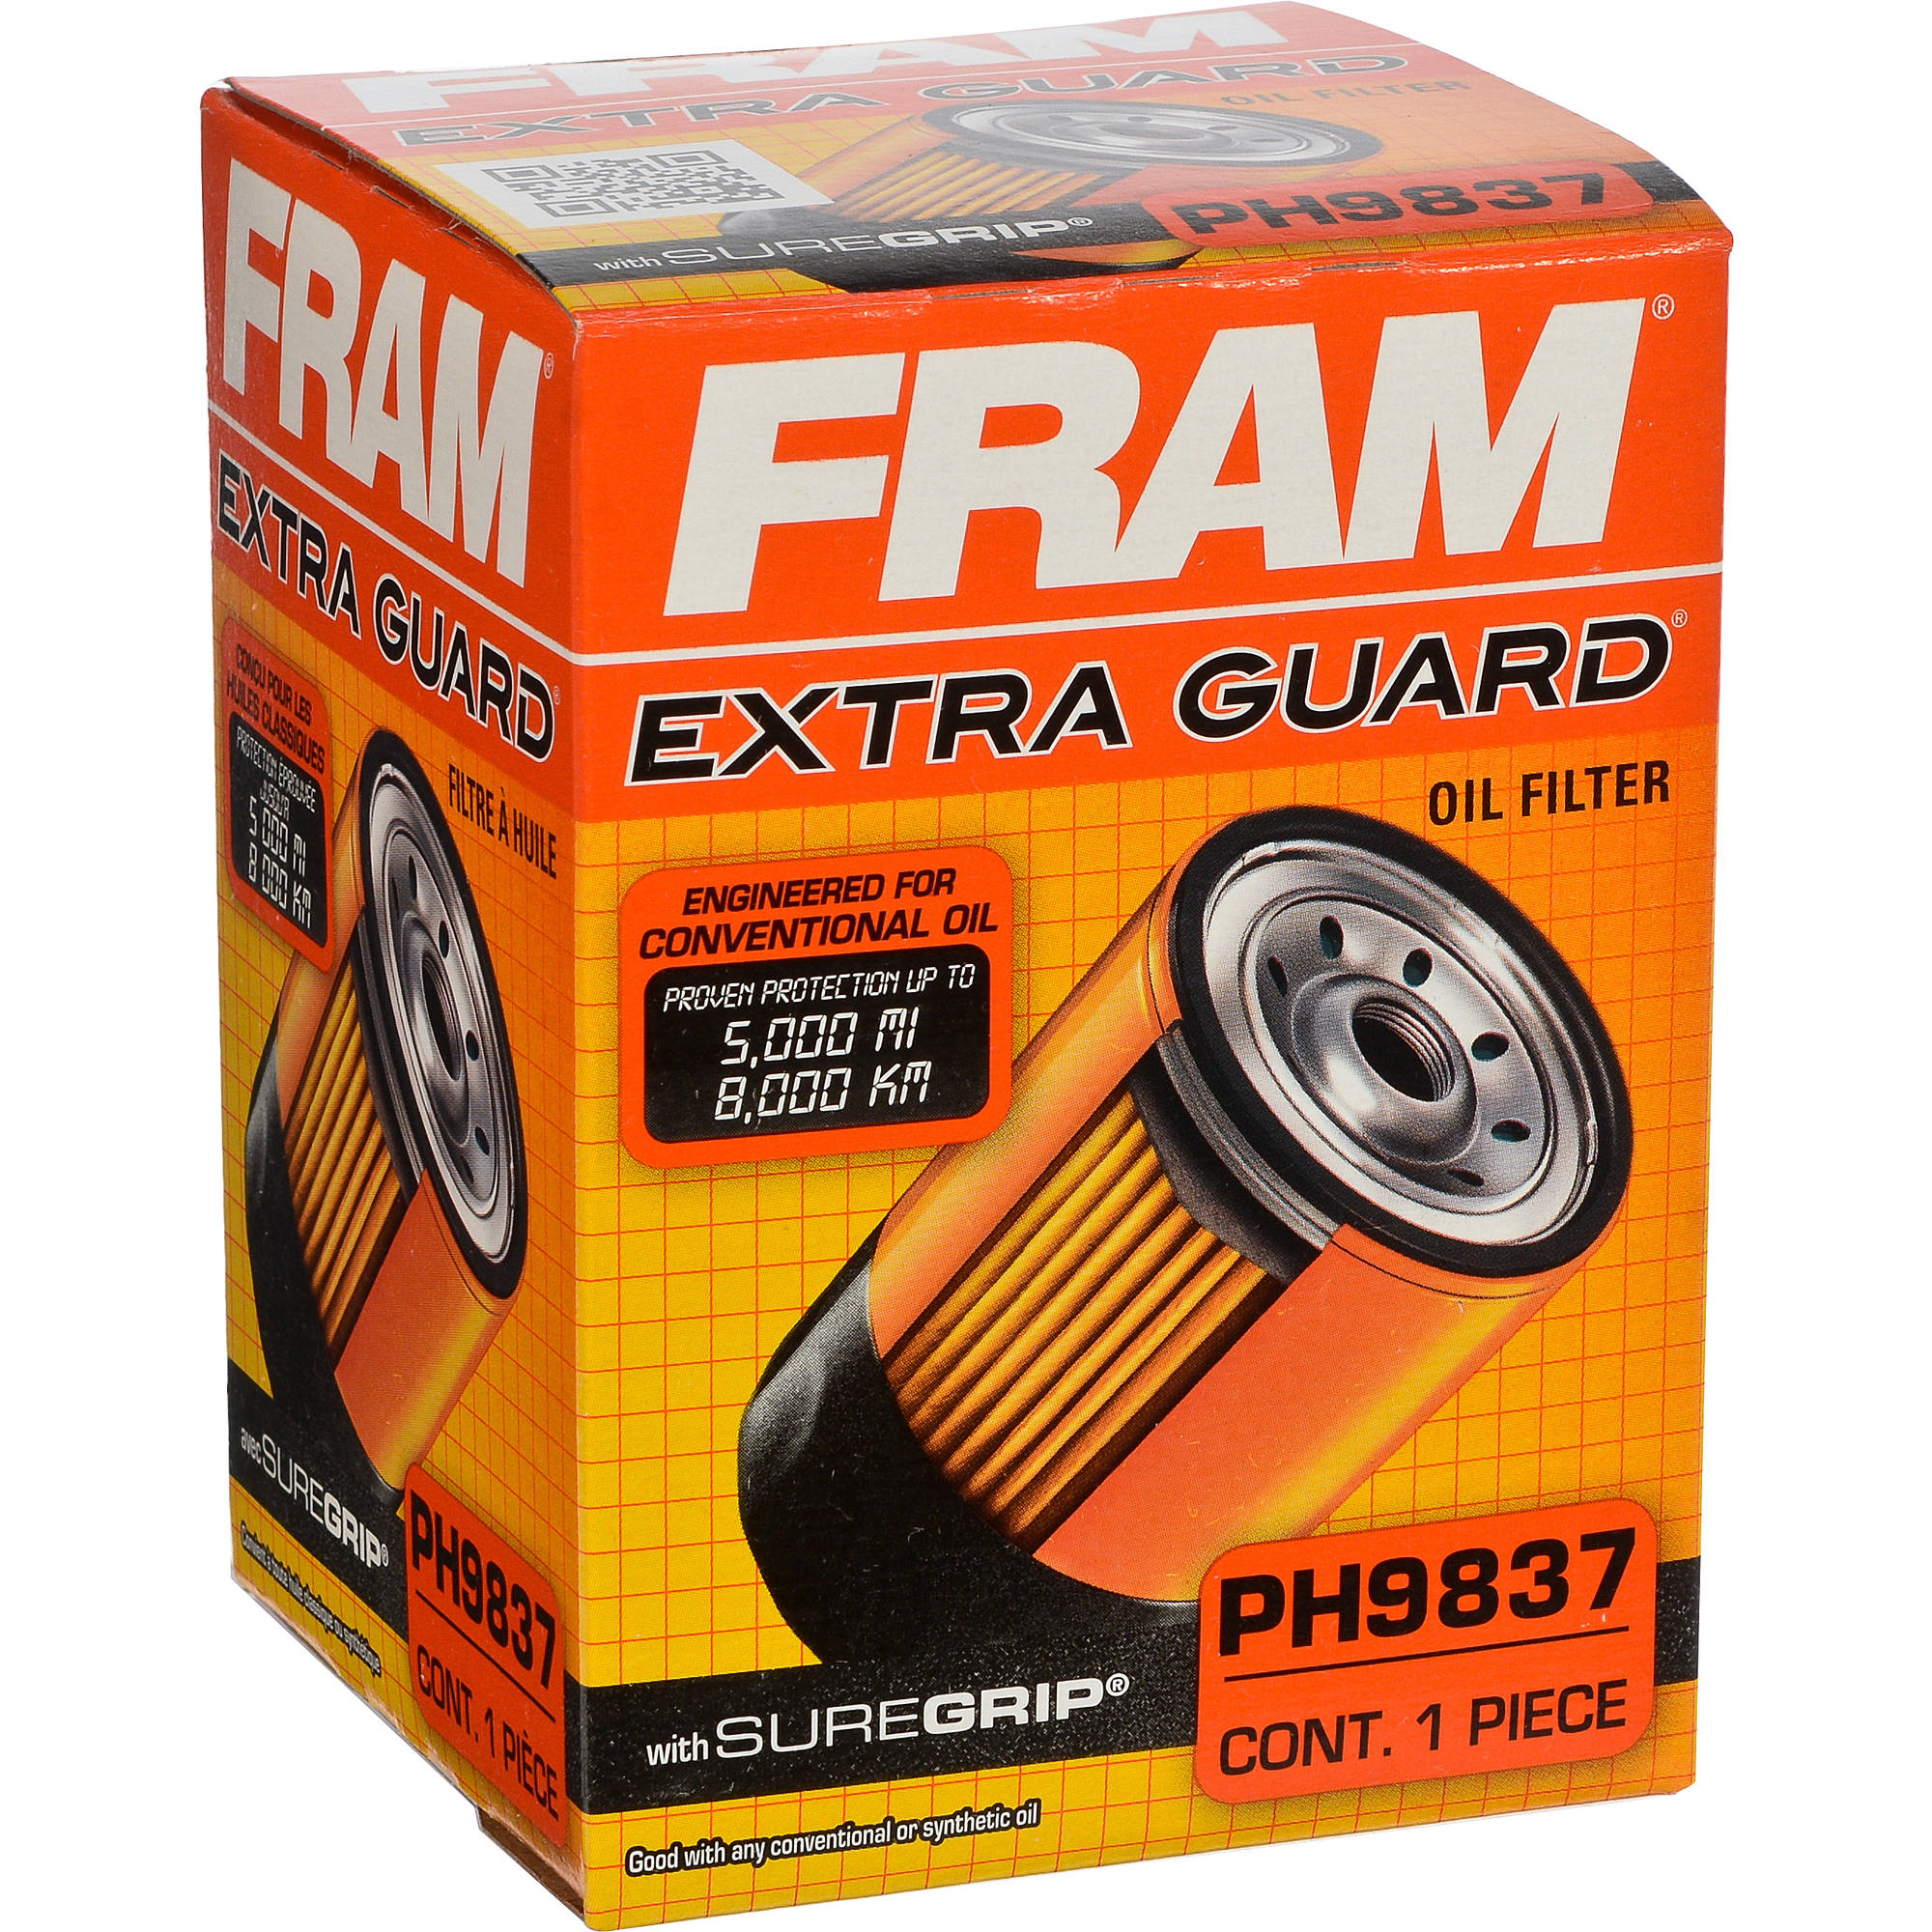 FRAM Extra Guard Oil Filter, PH9837